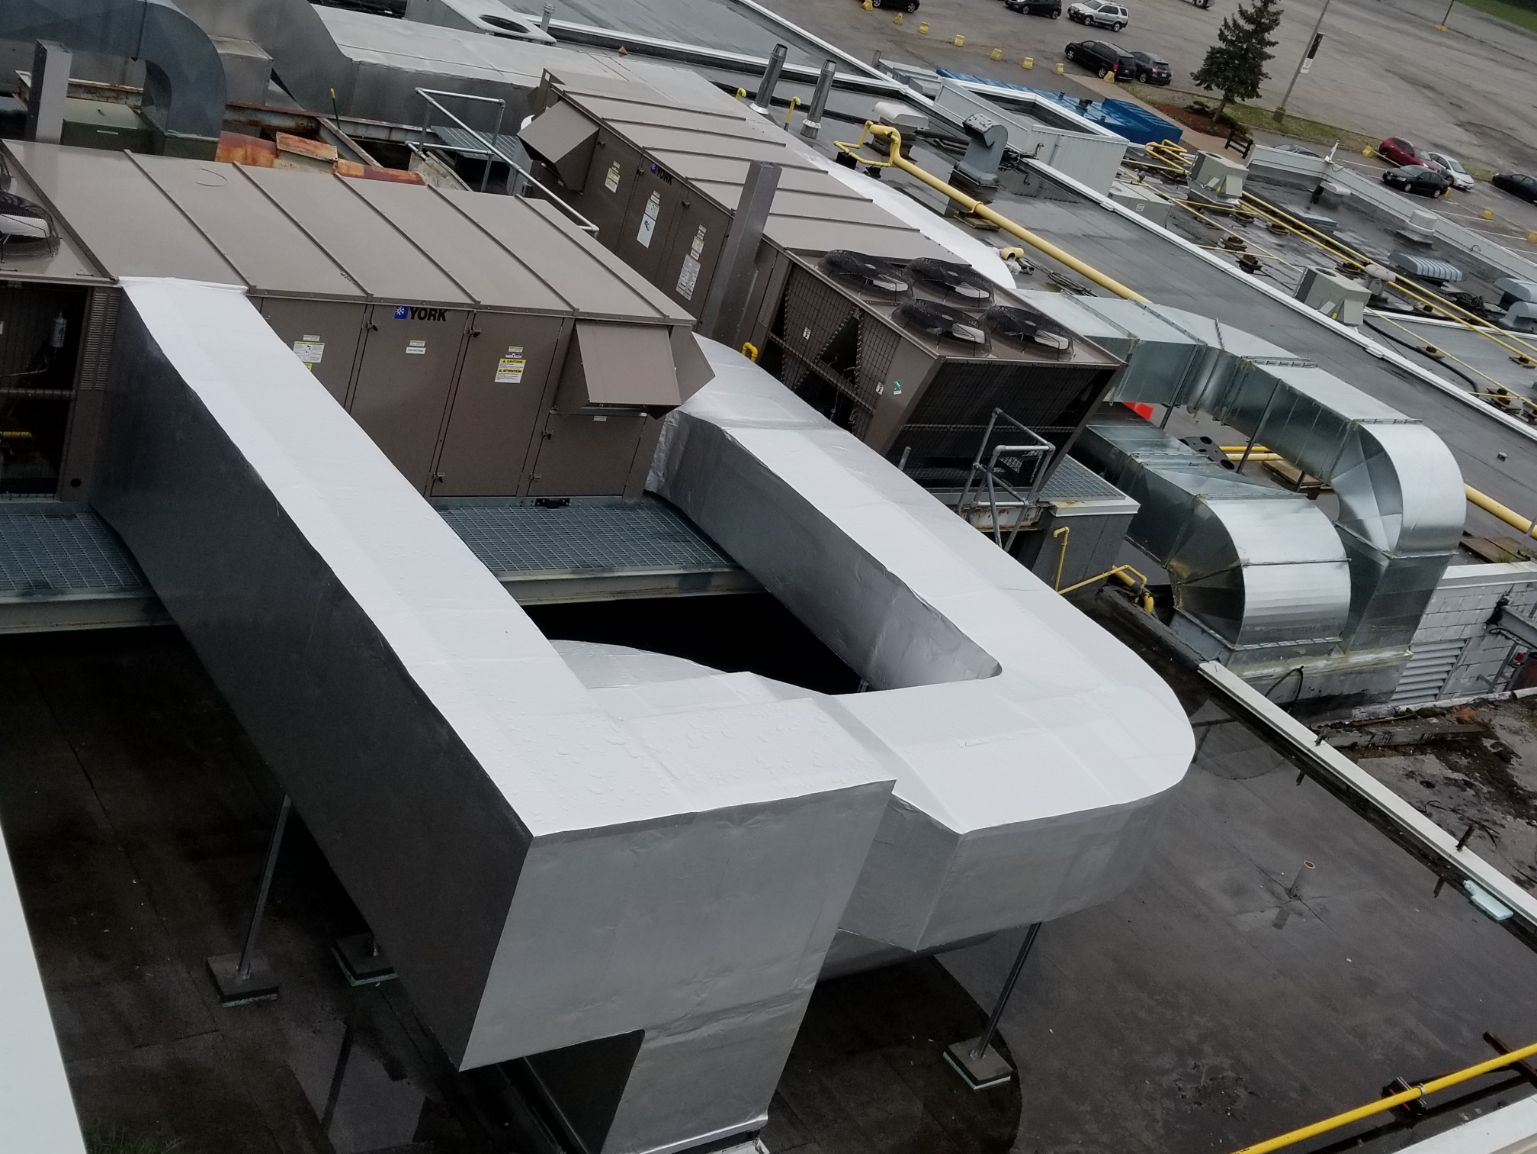 Top view of commercial ventilation system